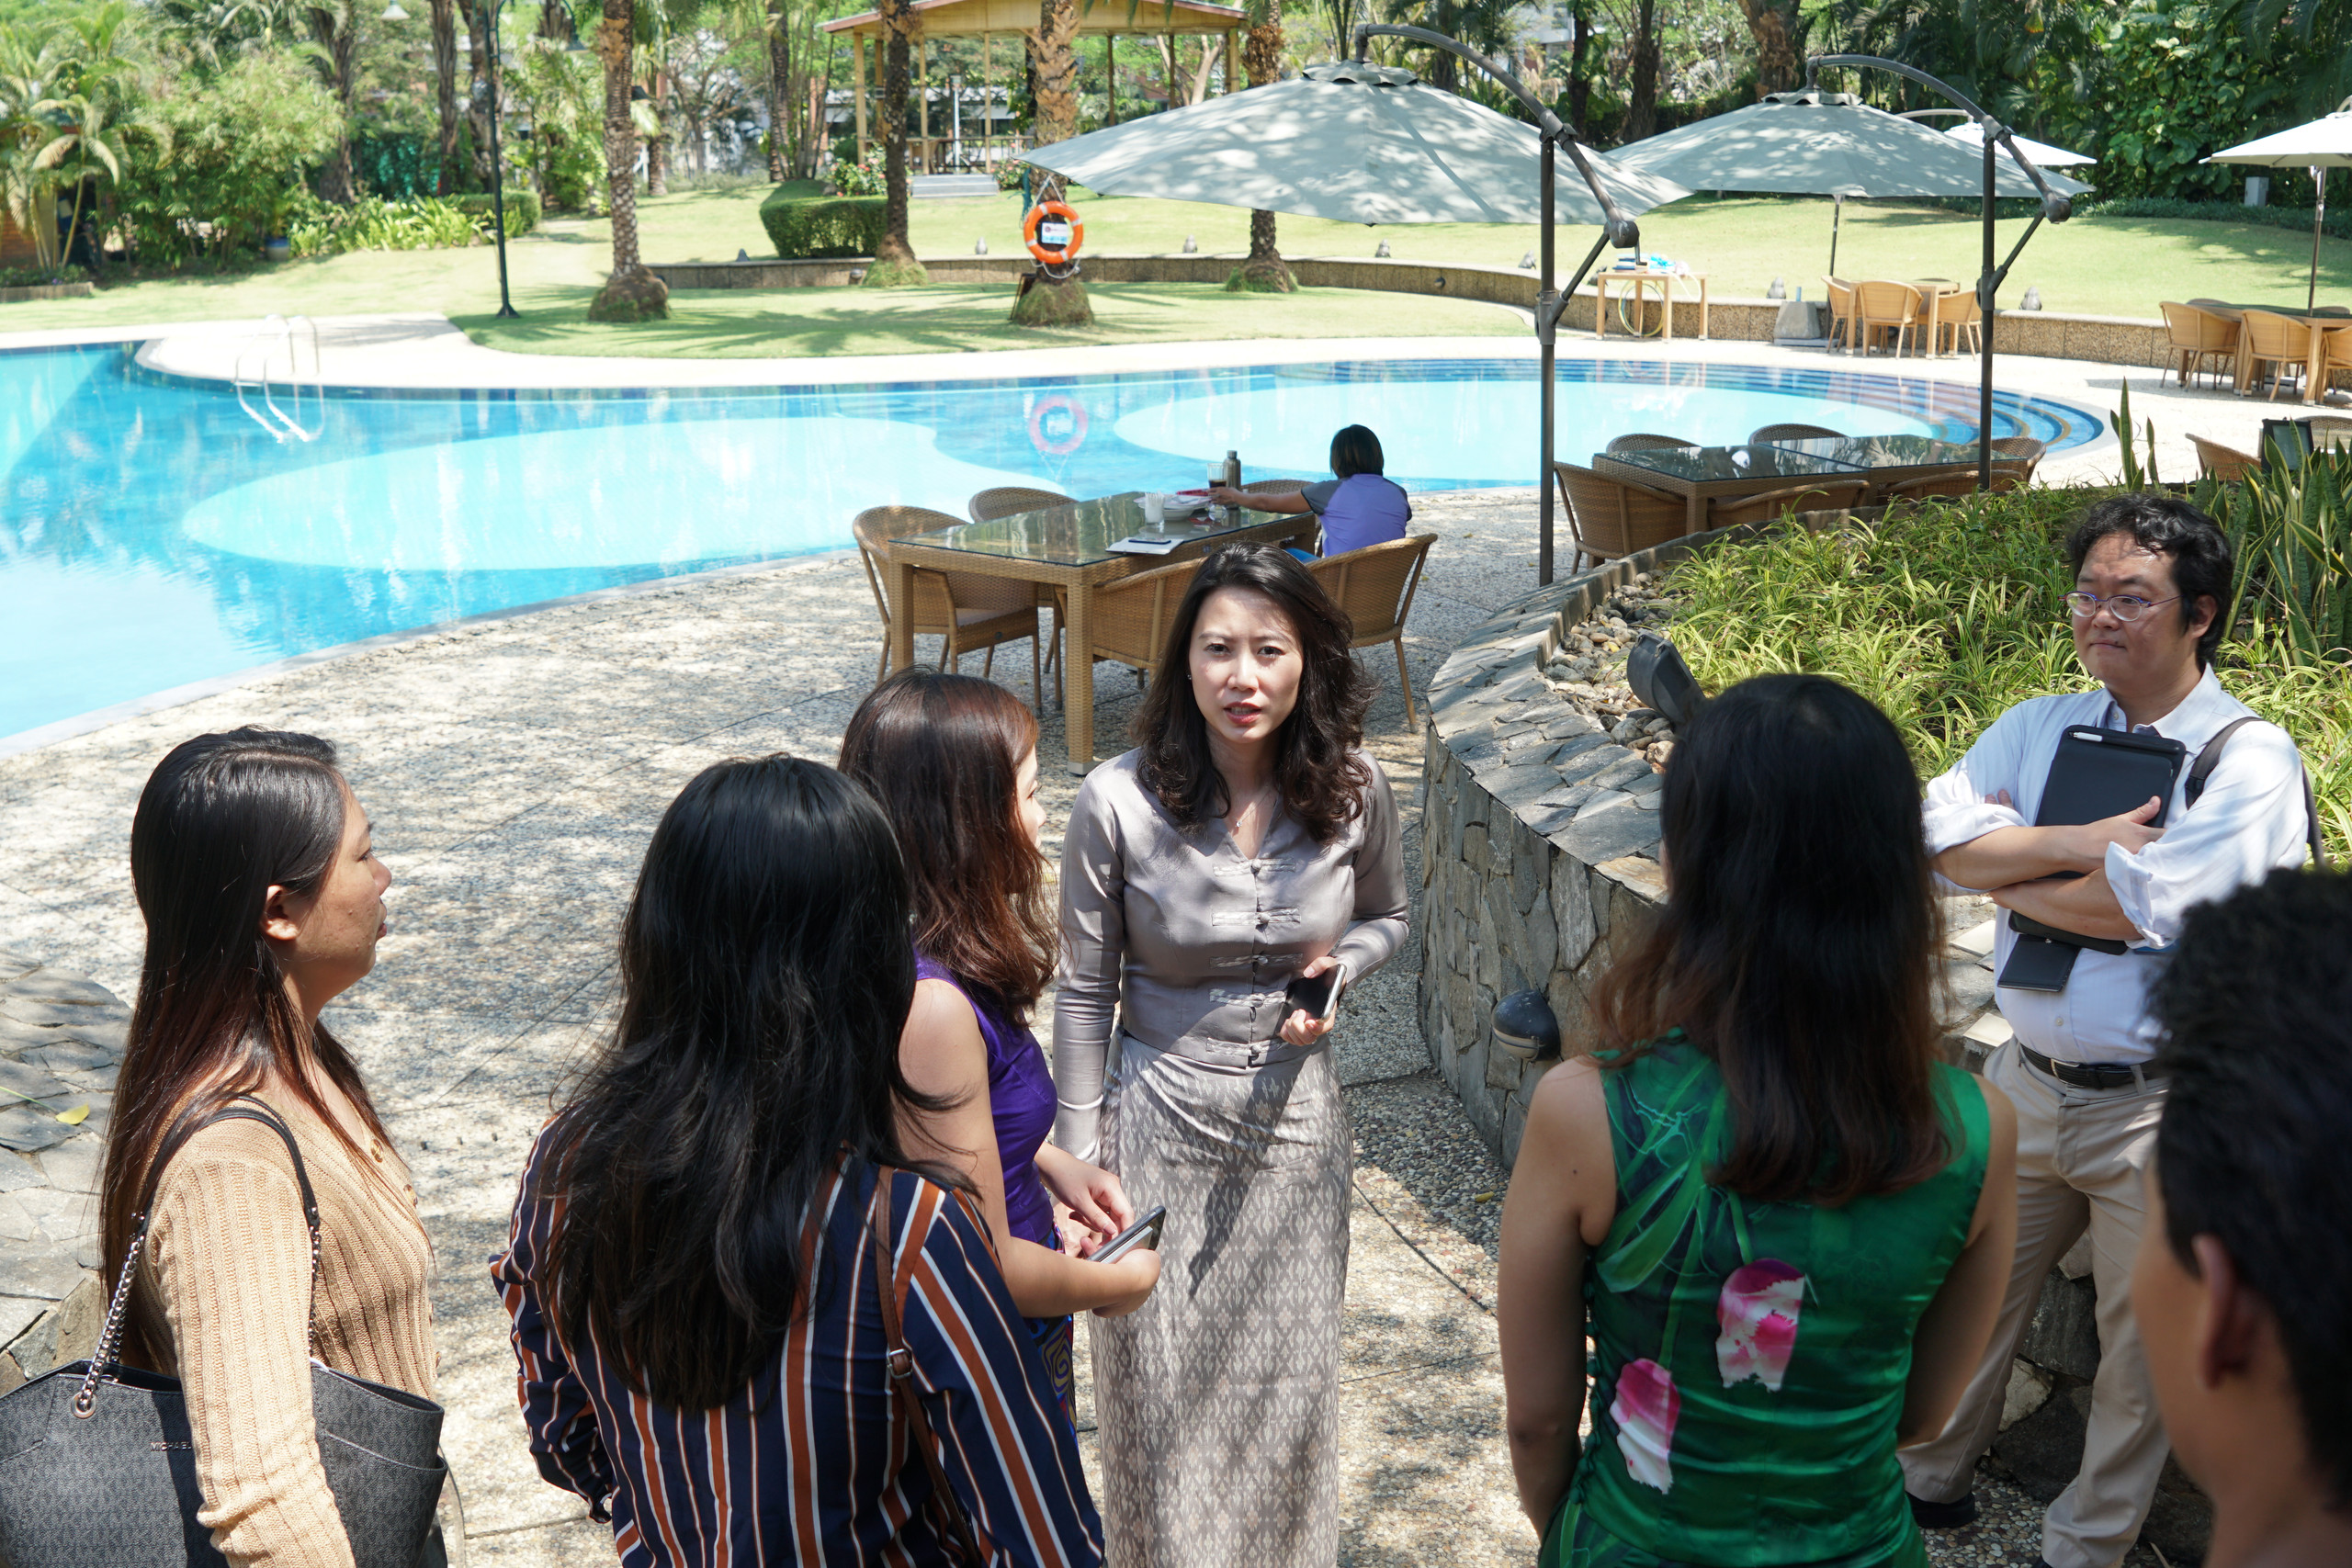 Lotus Garden Project Sale Press Conference at Pun Hlaing Estate, buying an investment property in Myanmar.